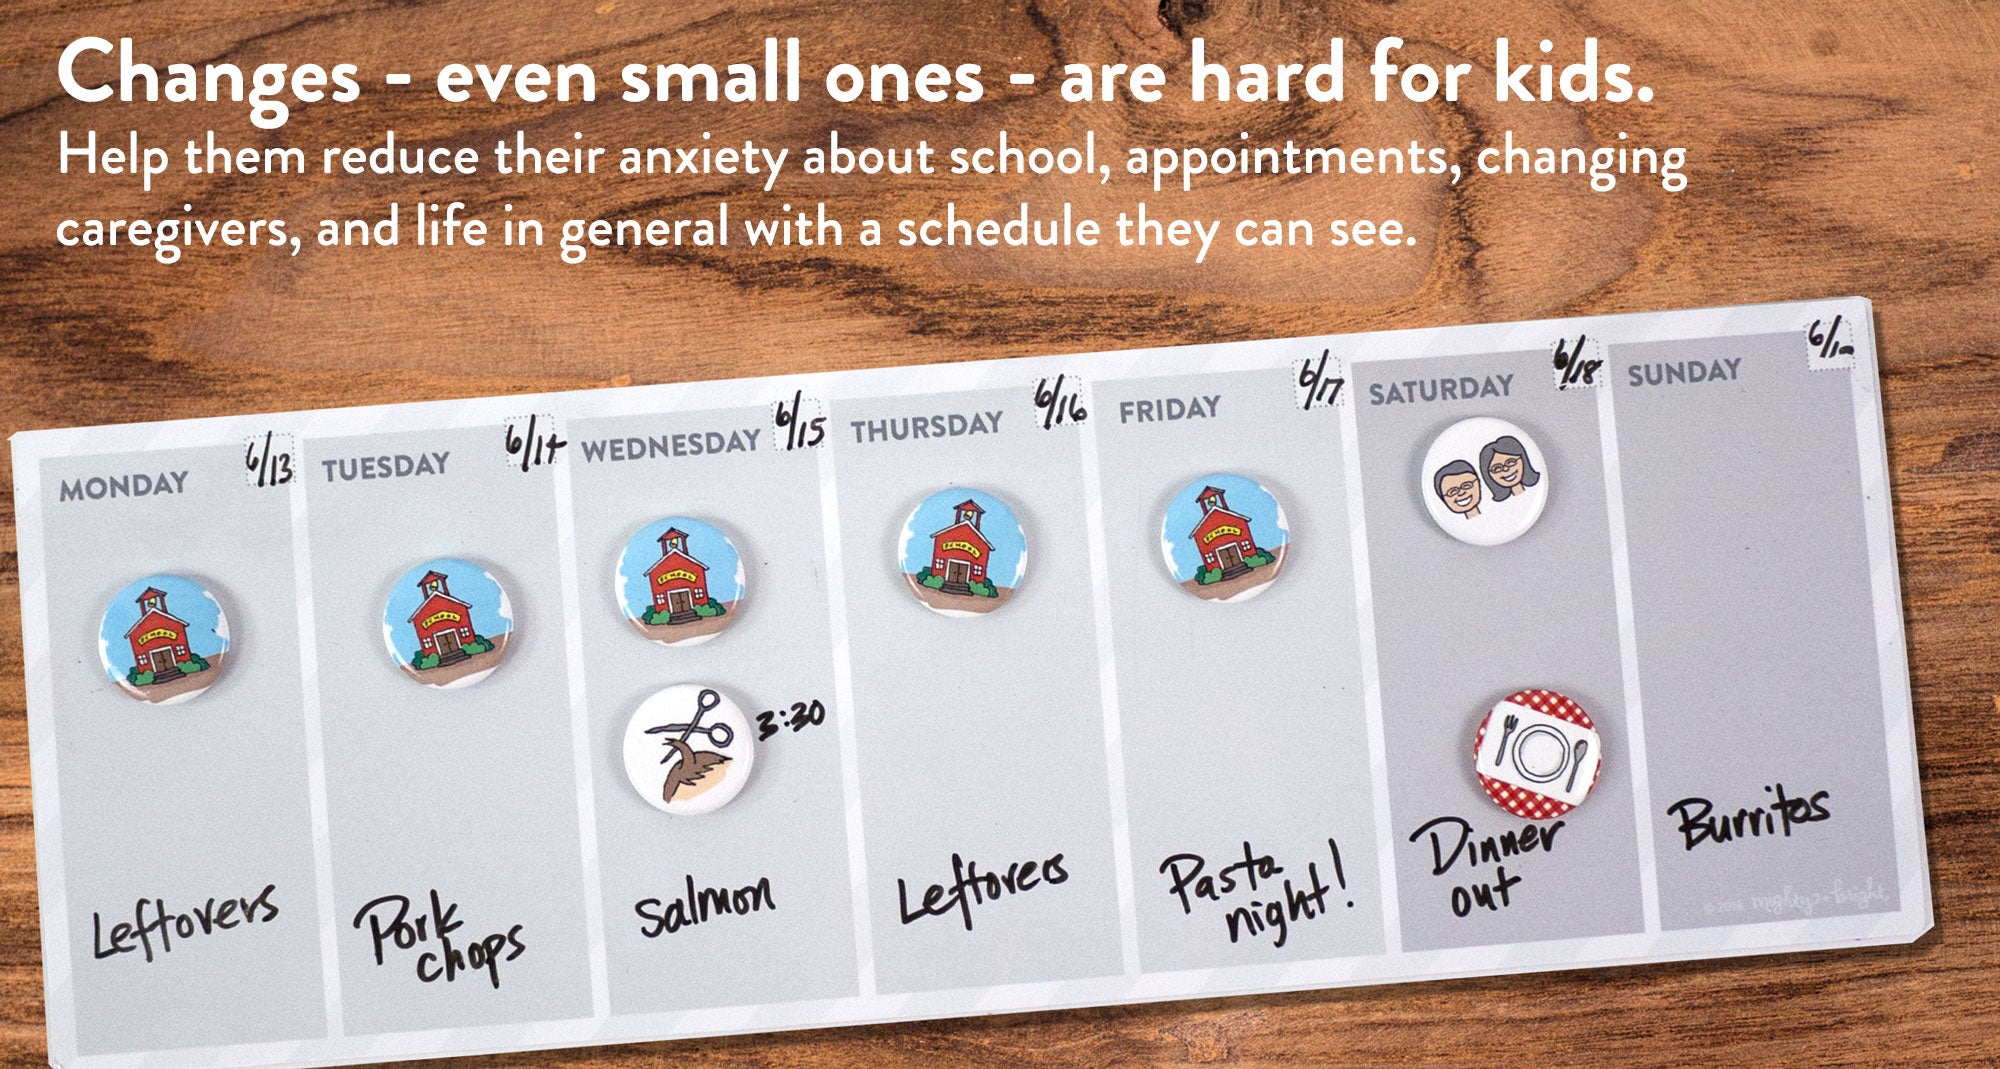 Changes - even small ones - are hard for kids. Help them reduce their anxiety about school, appointments, changing caregivers, and life in general with a schedule they can see.